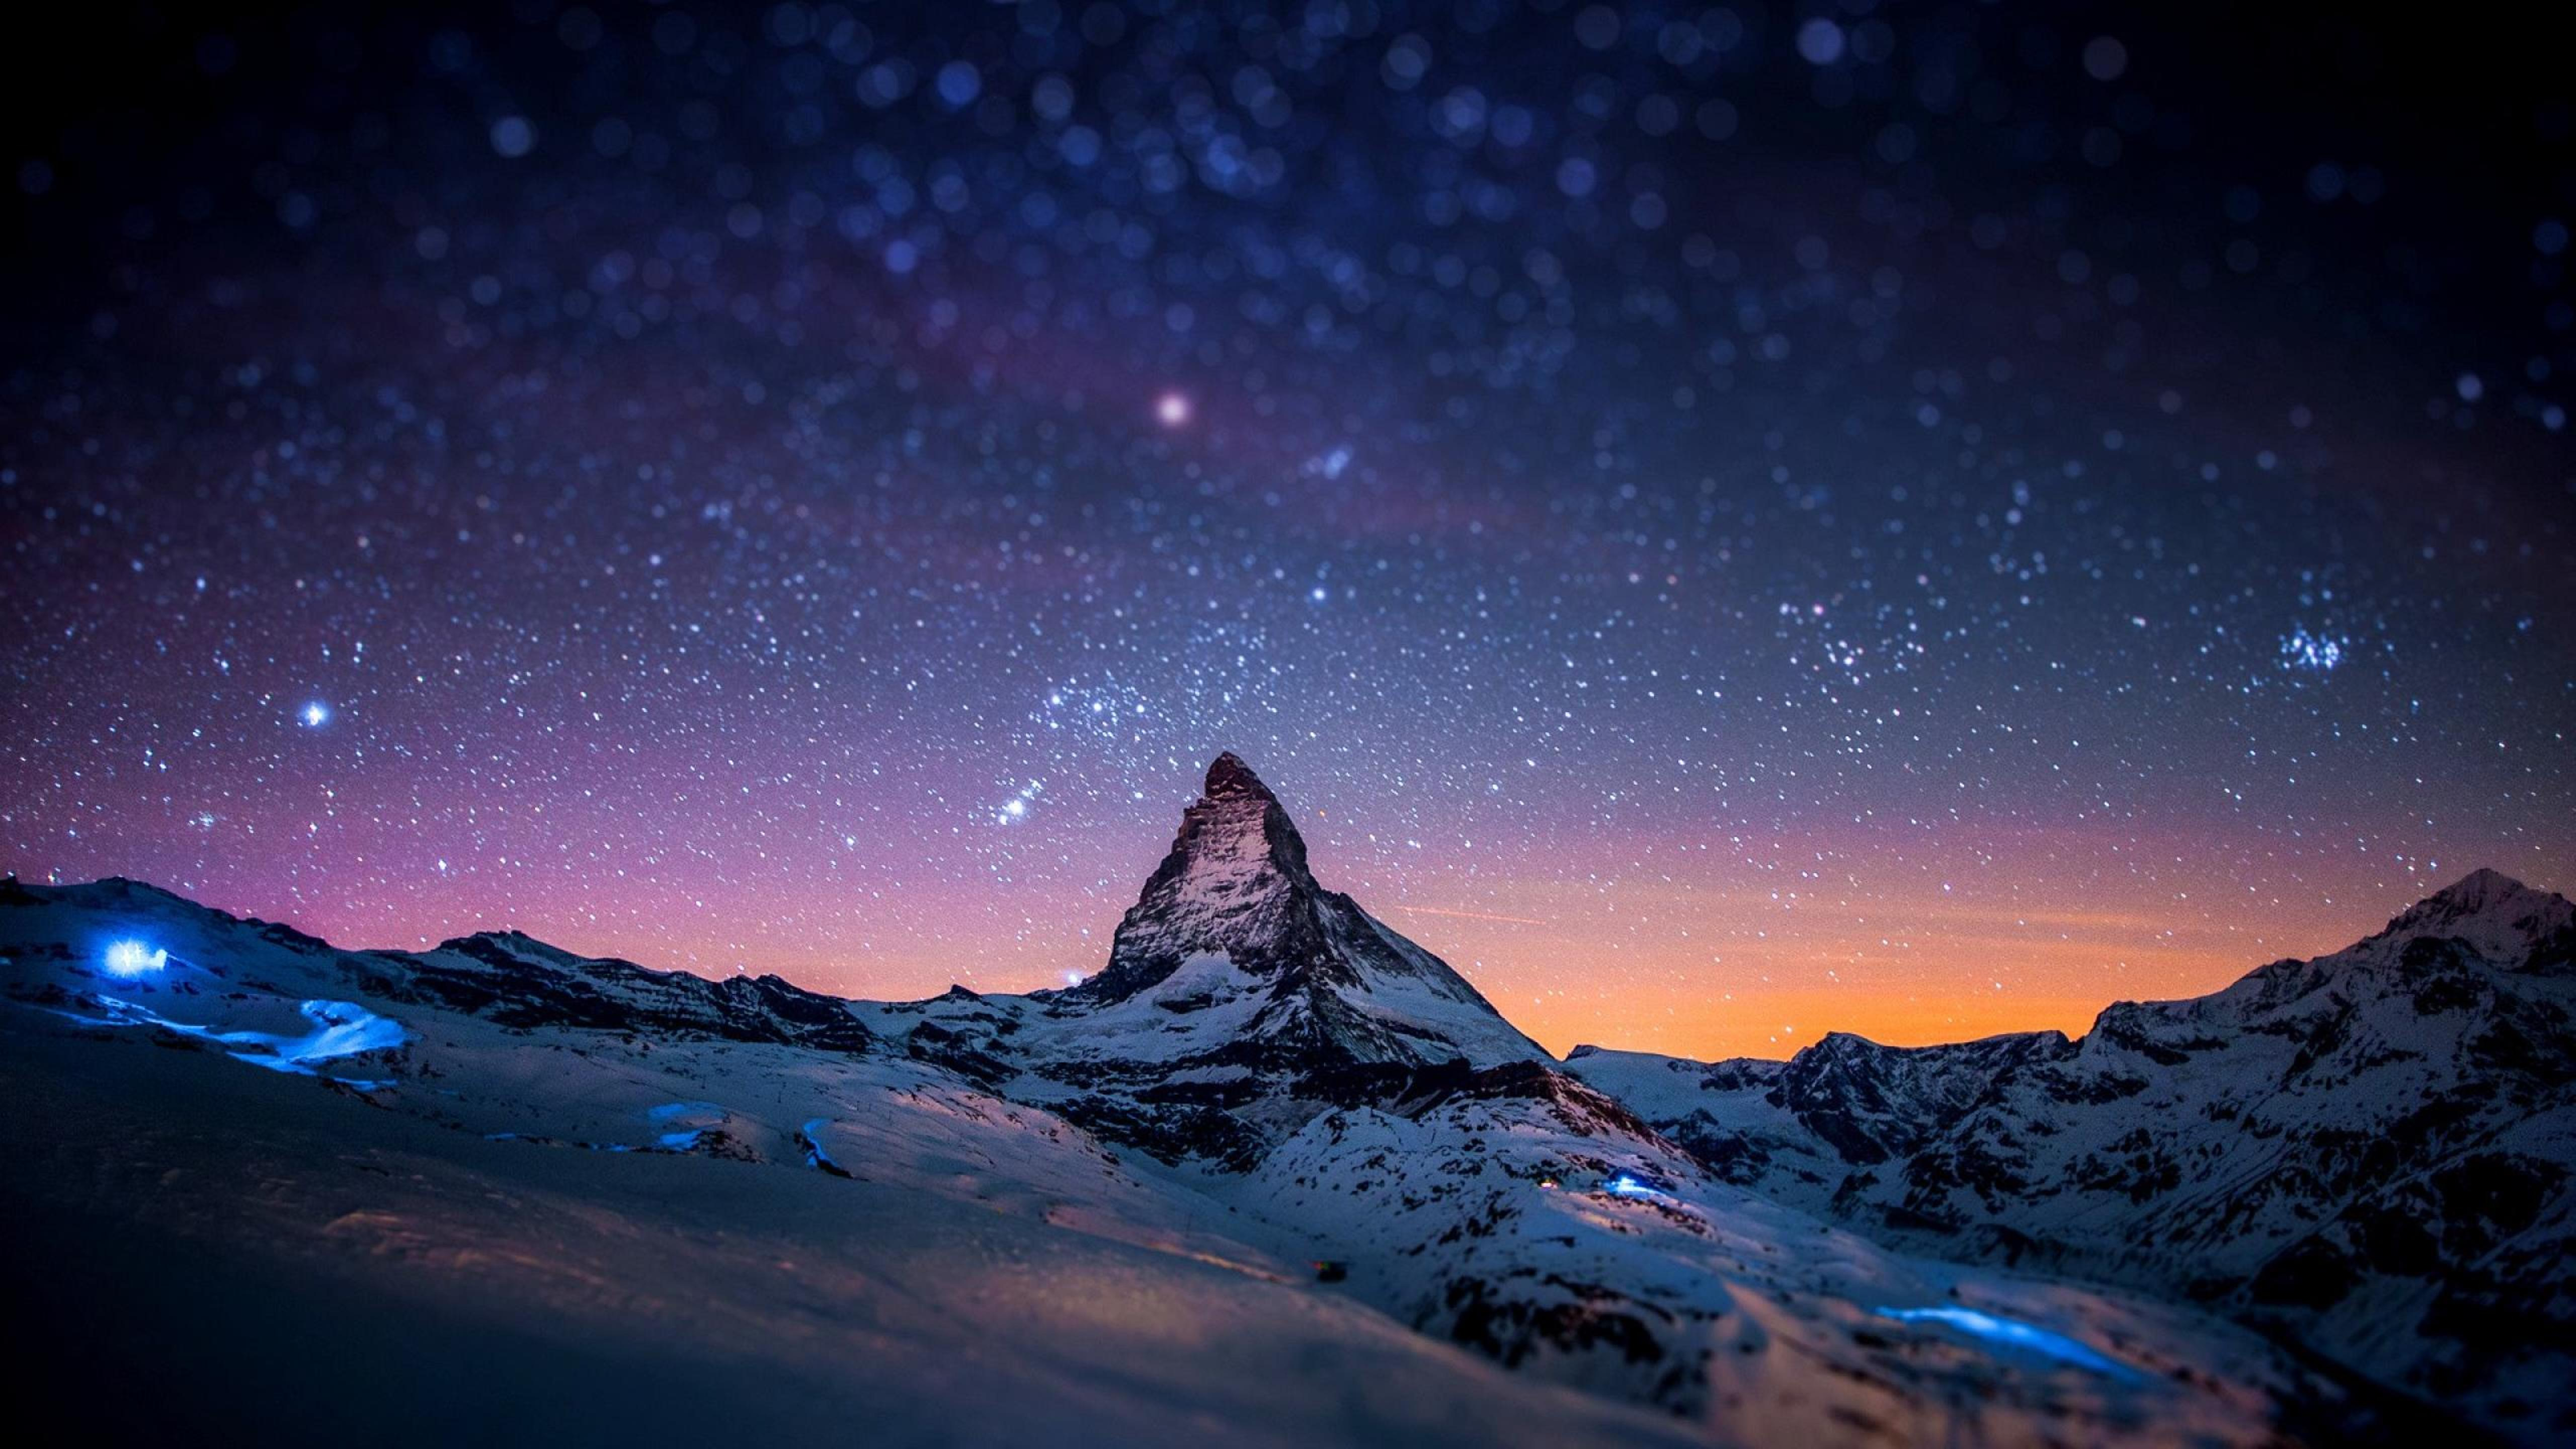 night view of sky full of stars wallpaper download 5120x2880